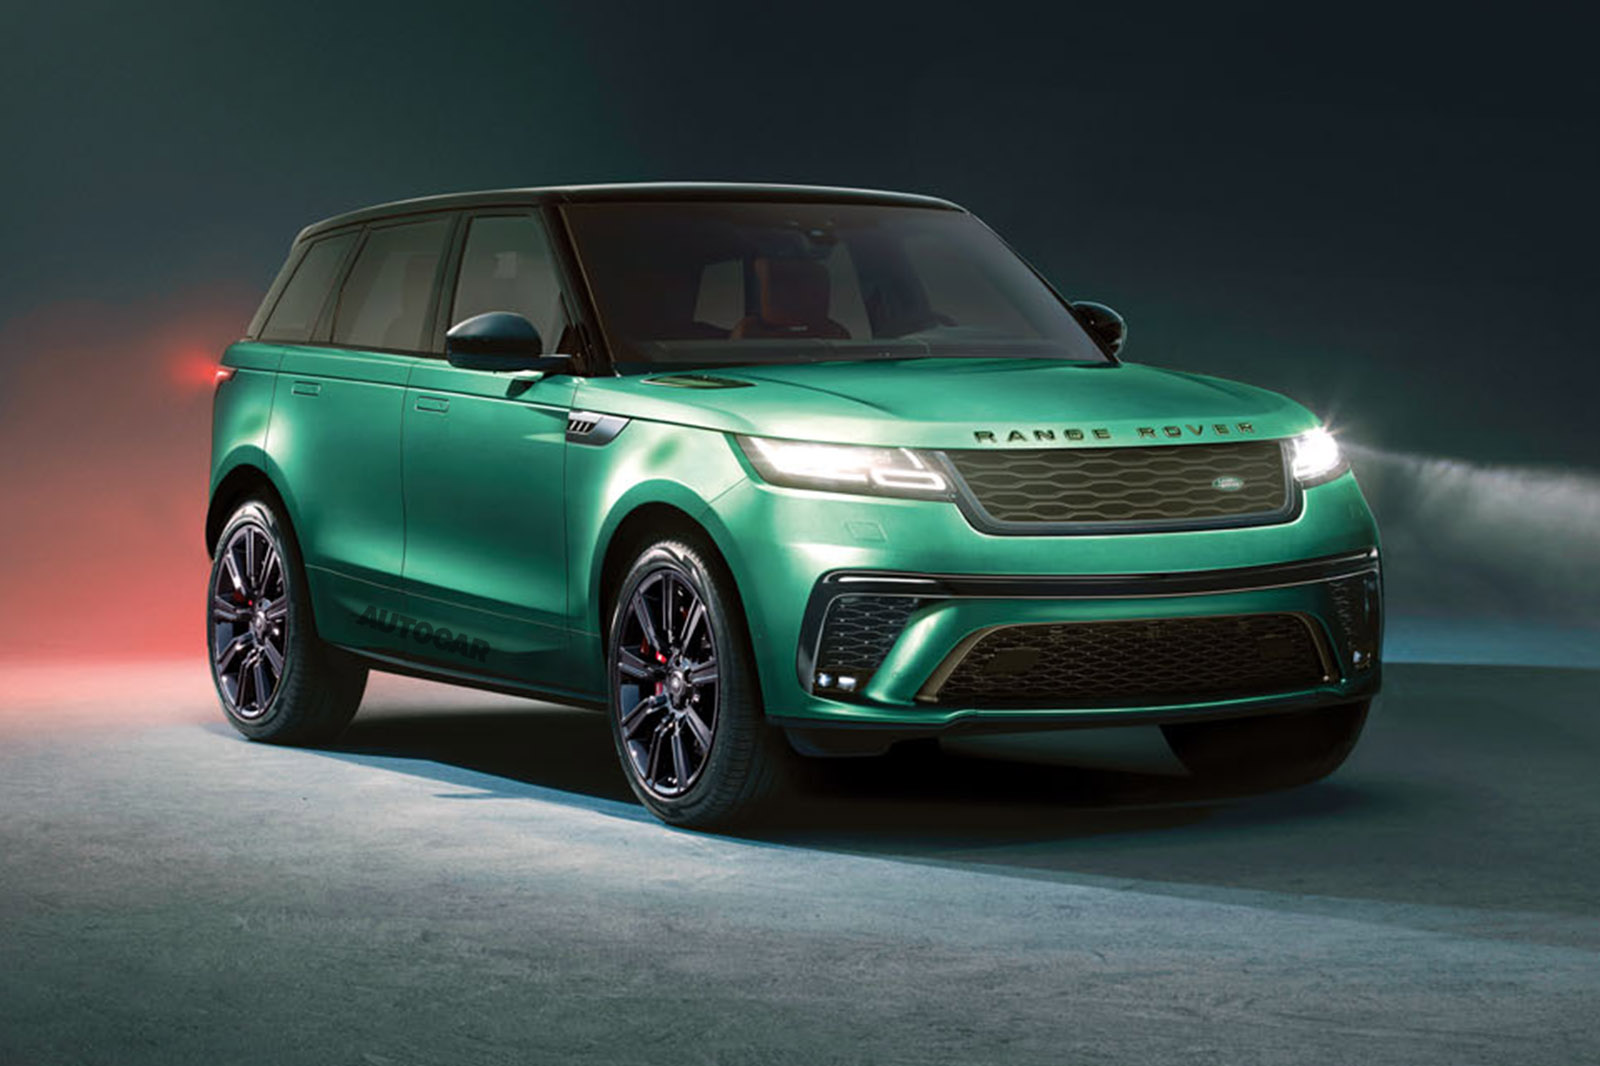 2022 Land Rover Range Rover Sport: Choosing the Right Trim